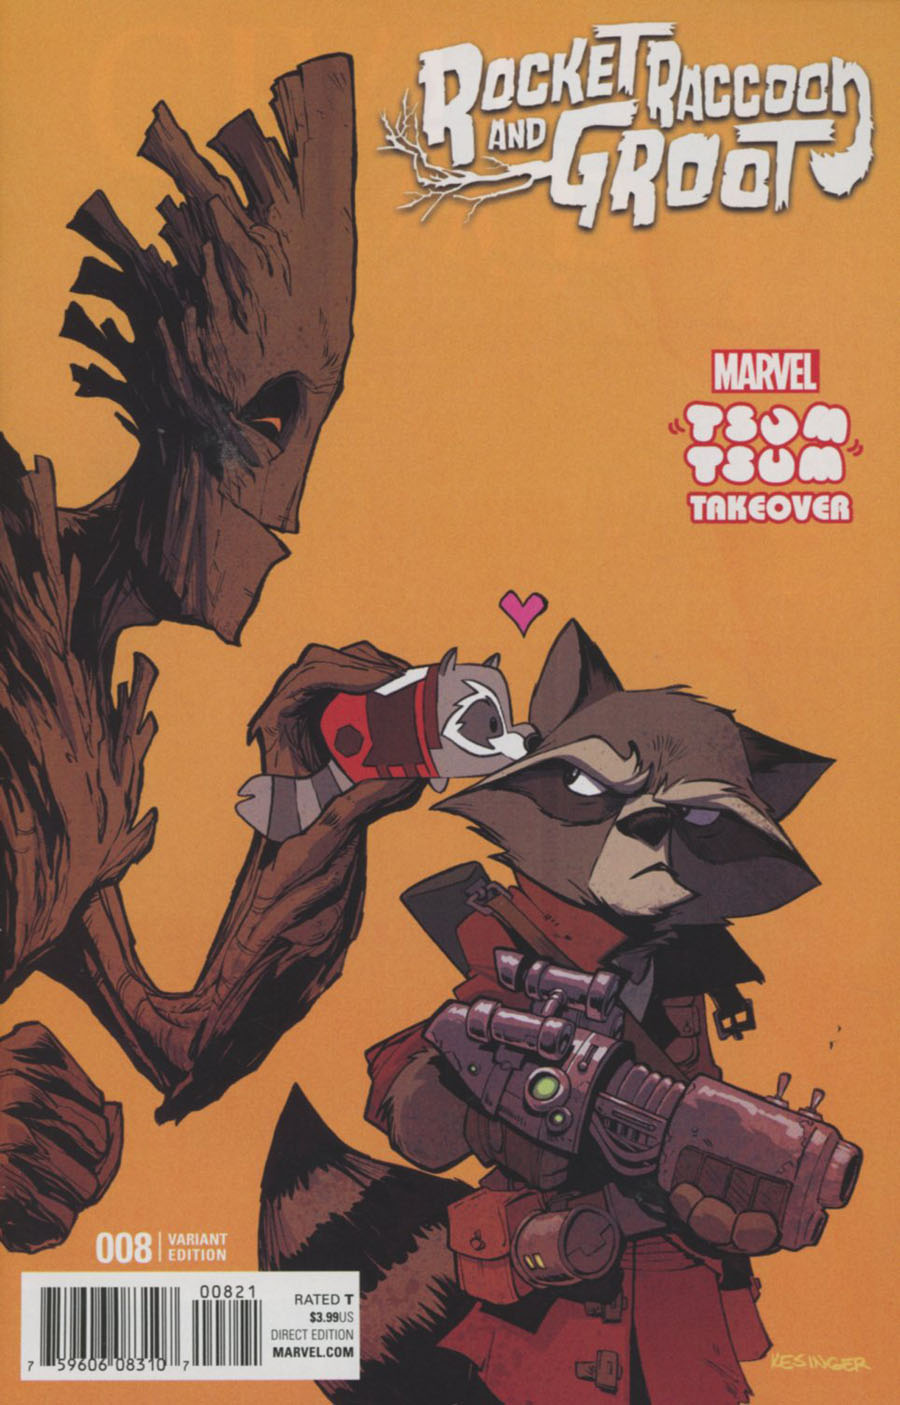 Rocket Raccoon And Groot #8 Cover B Variant Brian Kesinger Marvel Tsum Tsum Takeover Cover (Civil War II Tie-In)